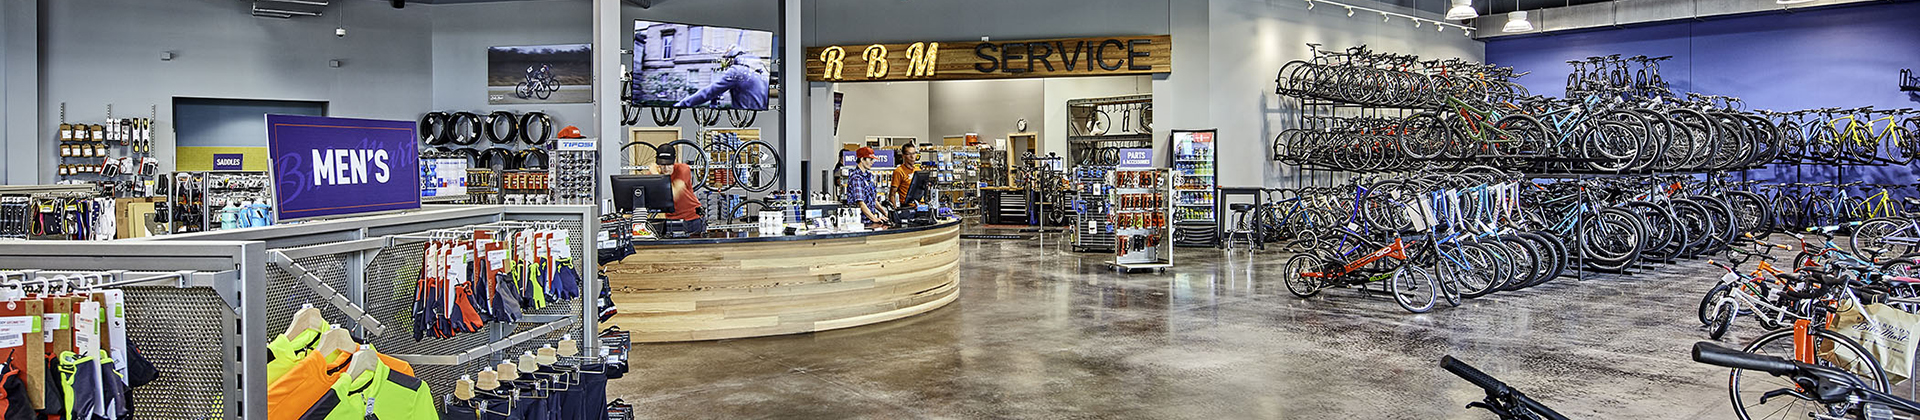 Richardson Bike Mart - McKinney, TX